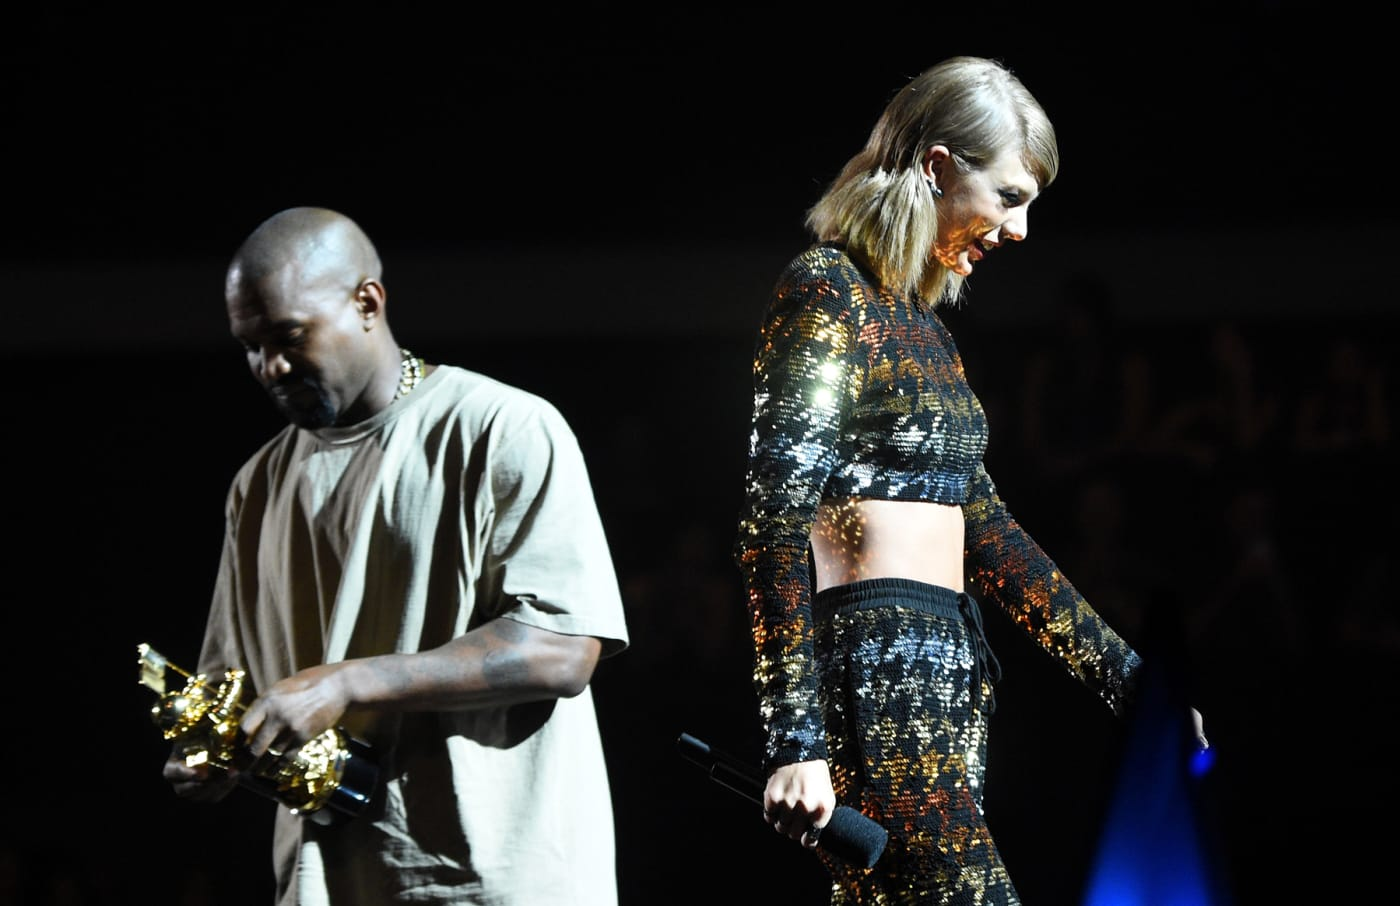 Taylor Swift and Kanye West